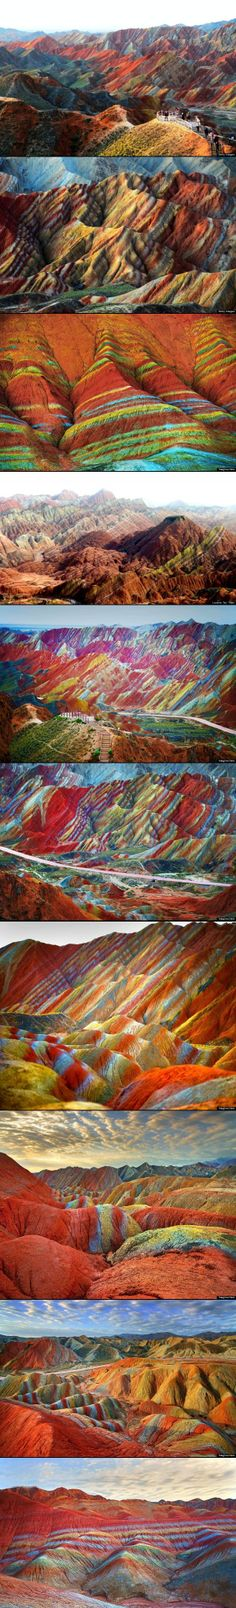 Rainbow Mountain located in China | Rainbow Mountains In China's Danxia Landform ... | Dream Vacations